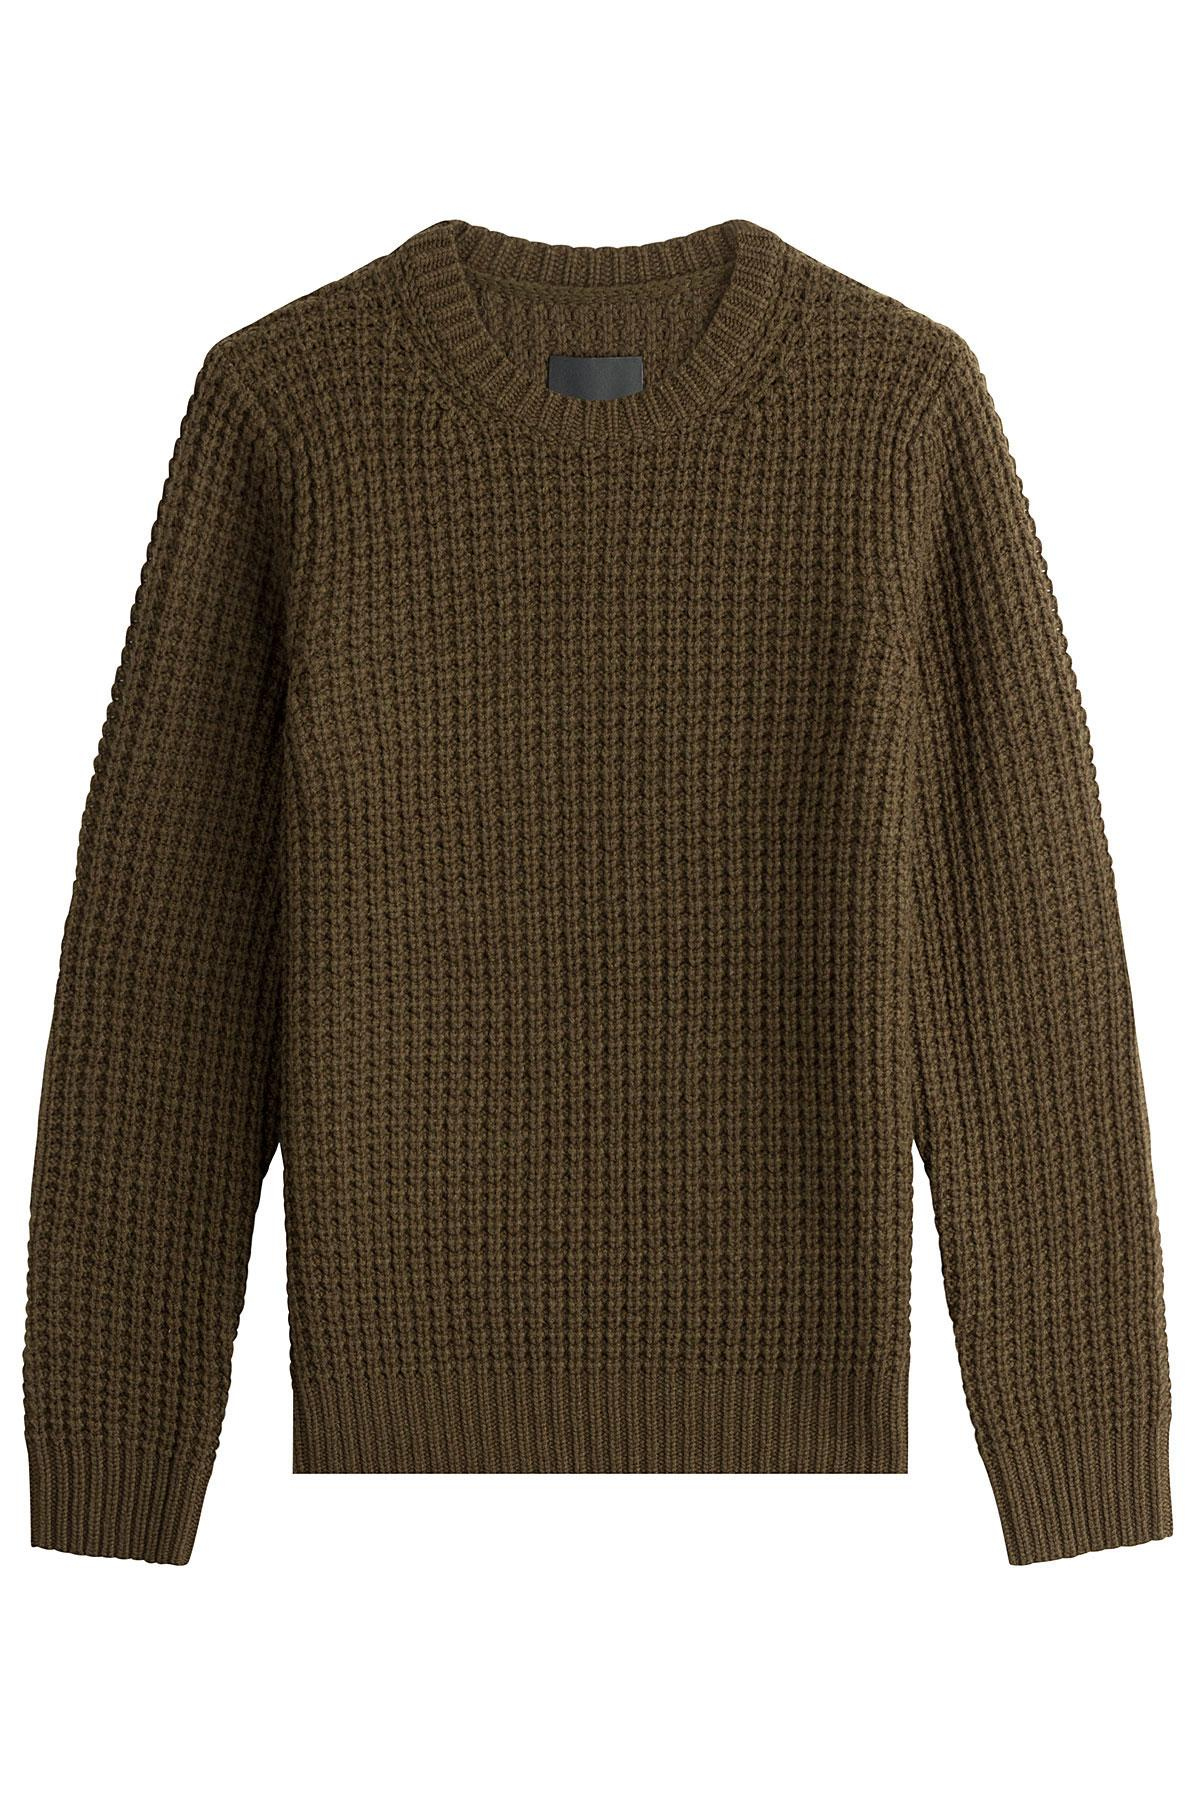 vince wool cashmere waffle knit pullover green in green for men lyst. Black Bedroom Furniture Sets. Home Design Ideas